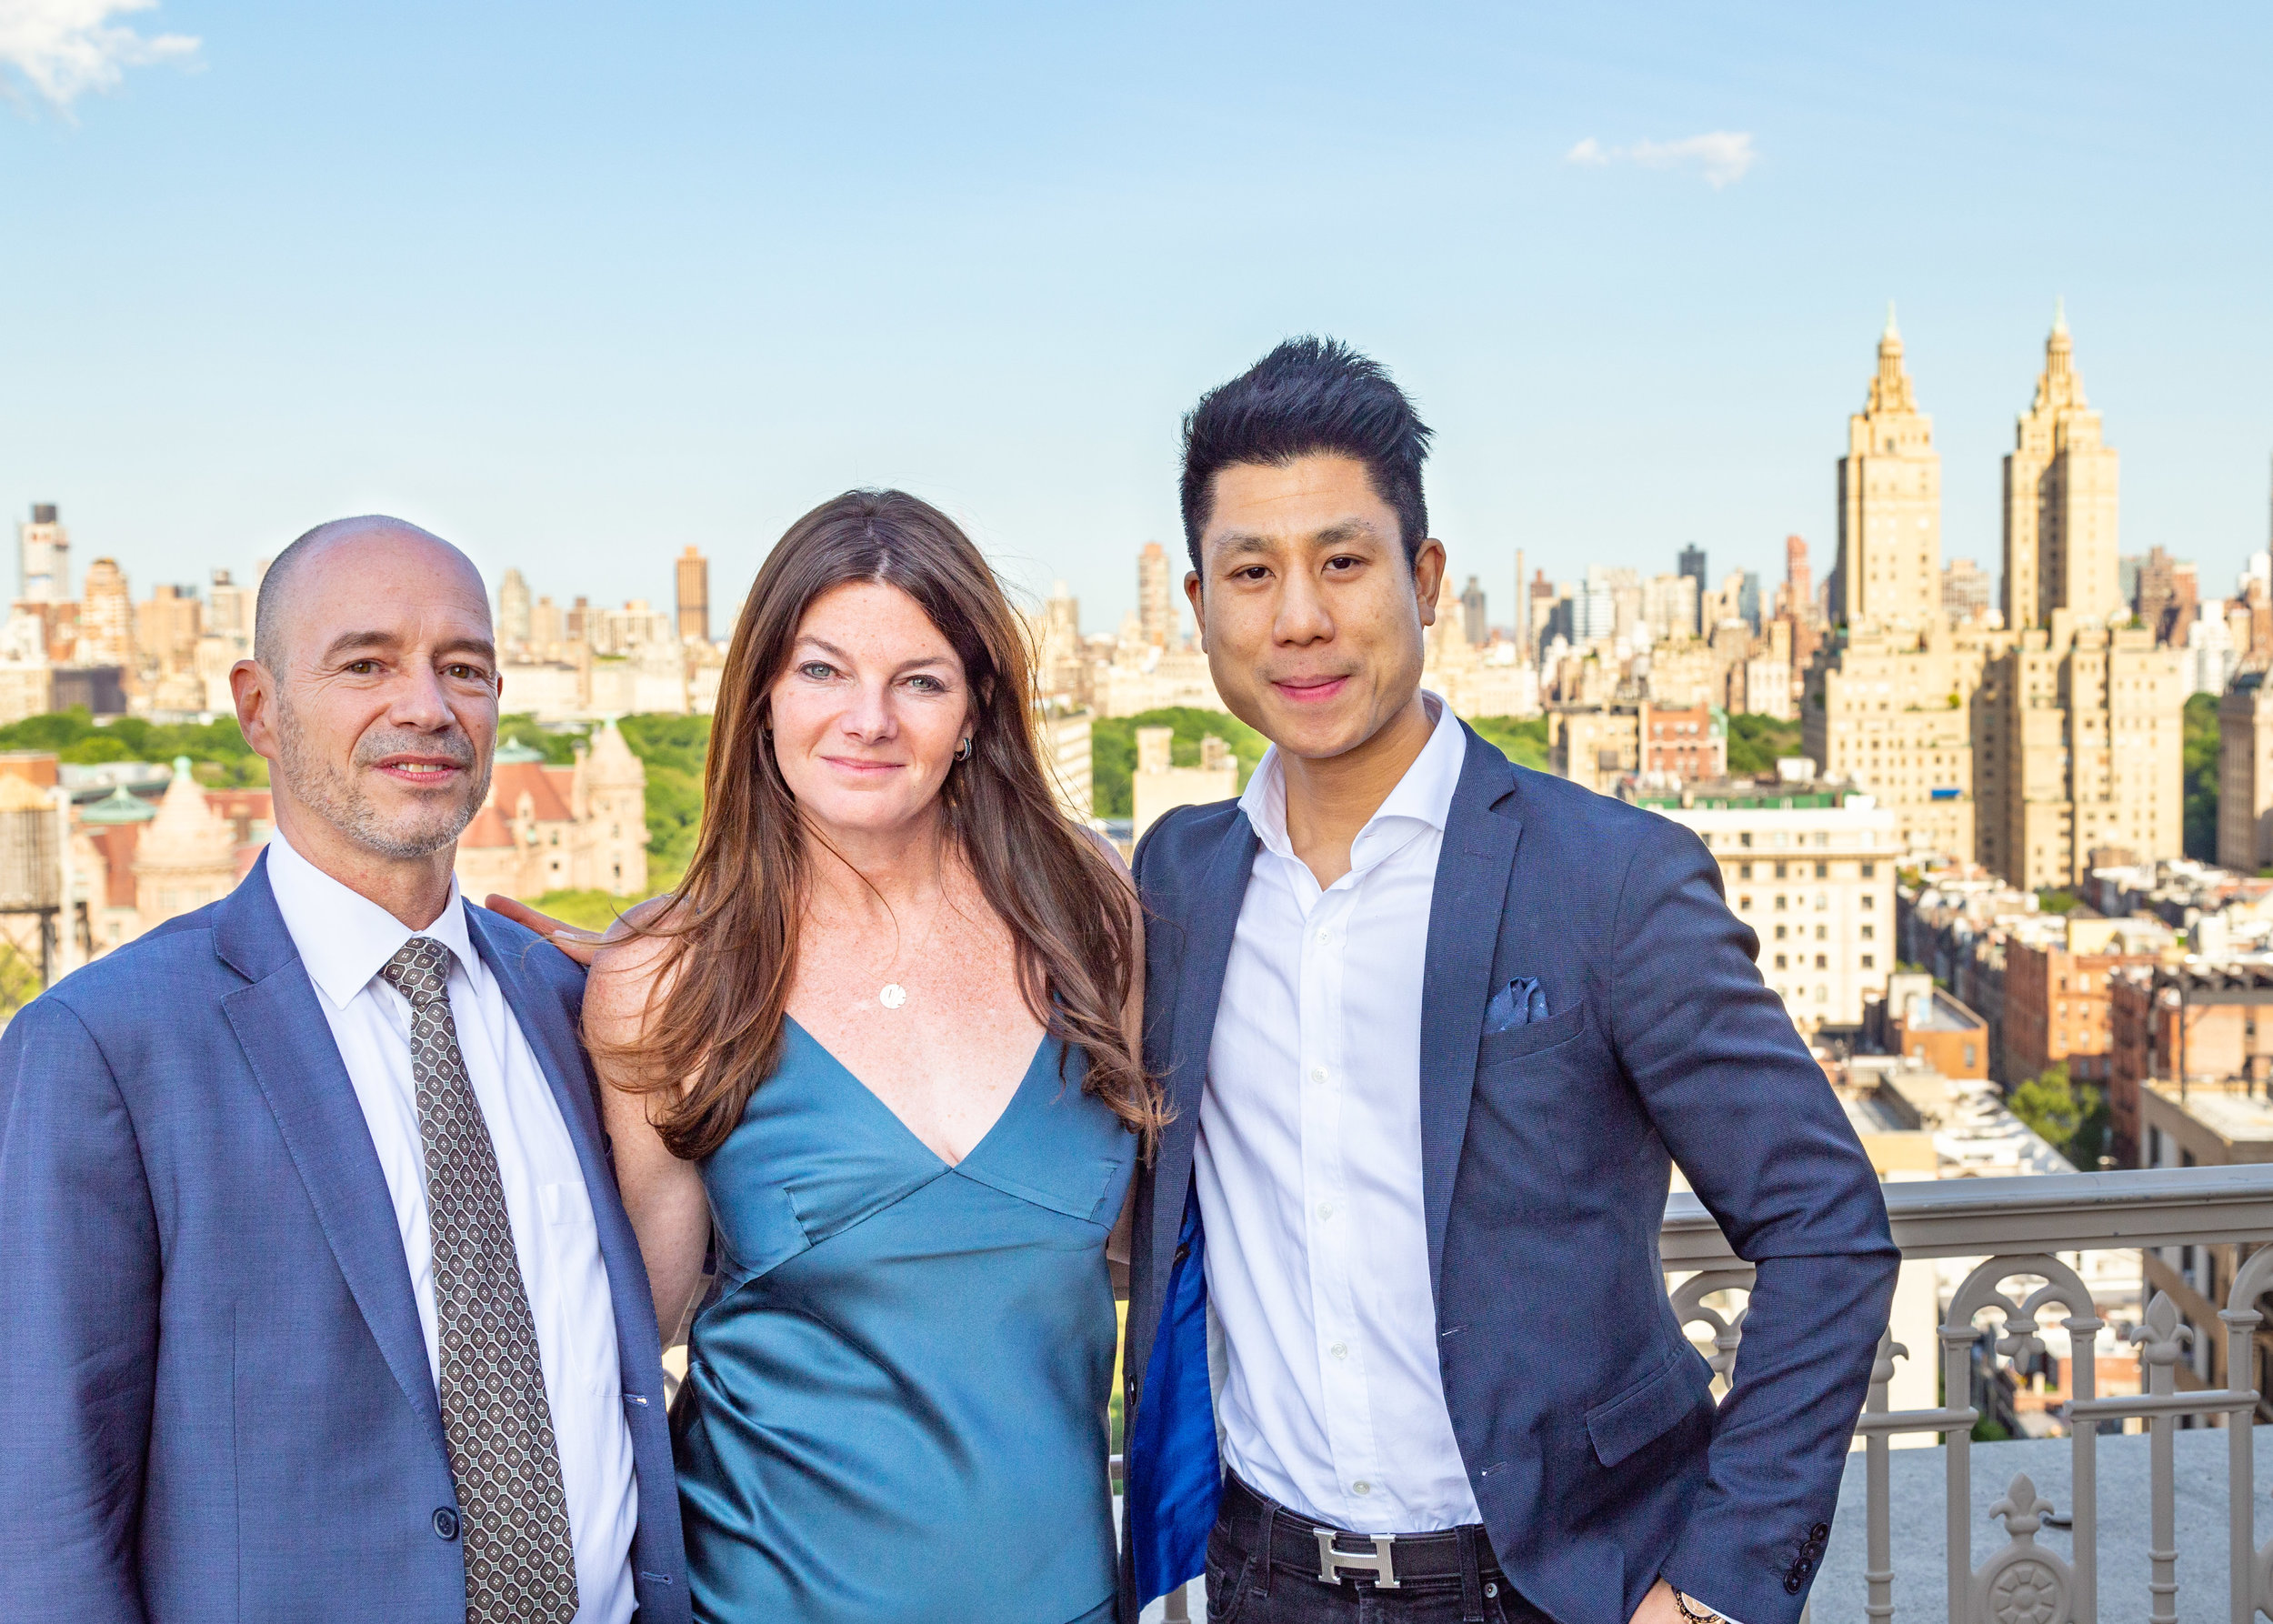 John Lawrence, Executive Manager of Sales at Douglas Elliman's 1996 Broadwa y Office; Jennifer Kalish, Agent, Douglas Elliman; and, Ace Watanasuparp, Executive Vice Presidence, Citizens Bank